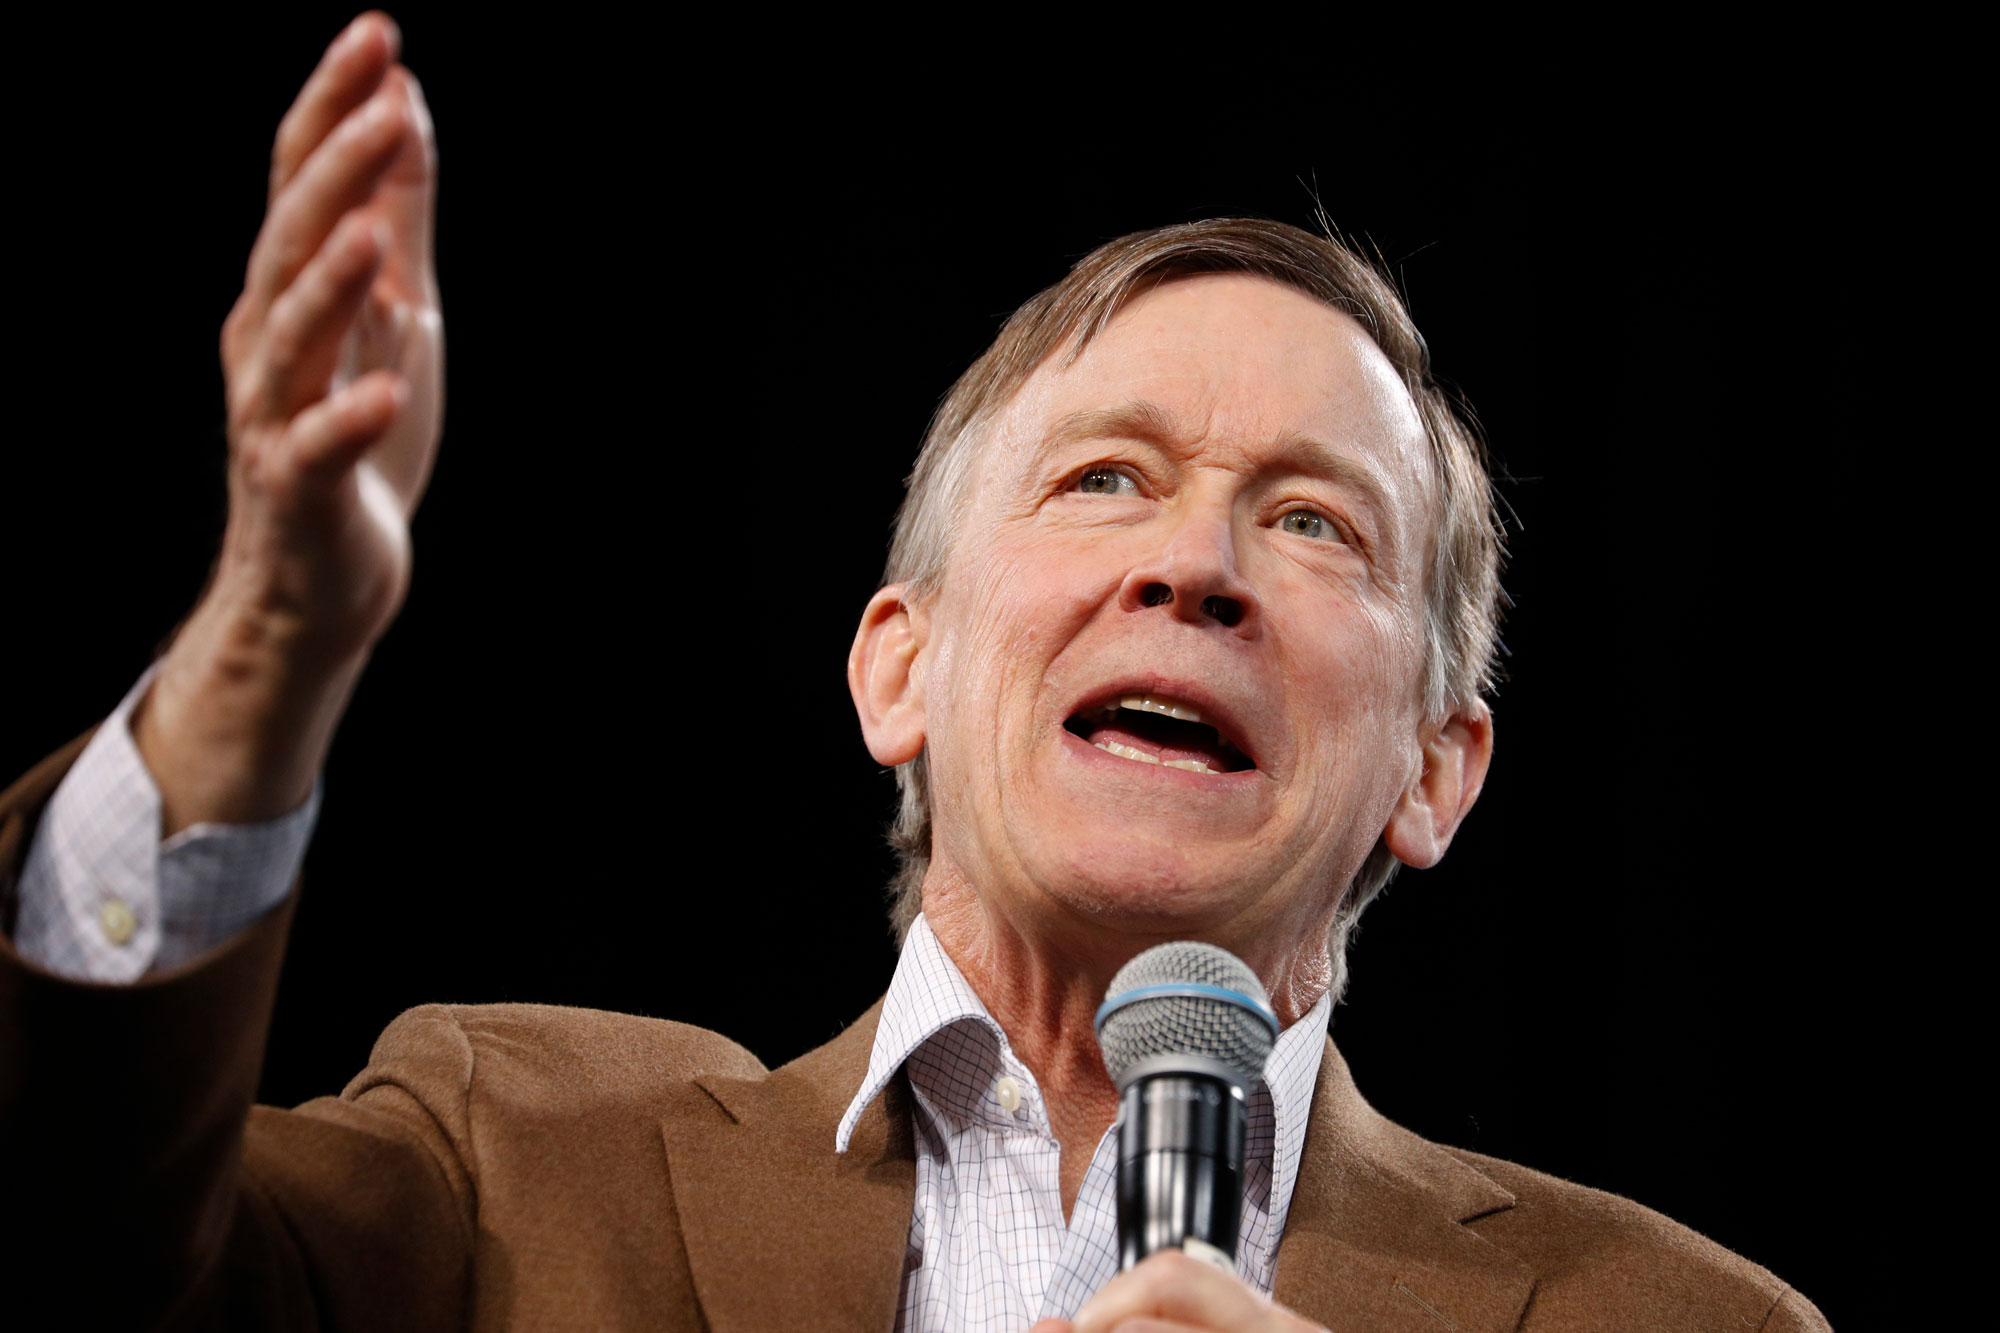 Photo: John Hickenlooper | April 2019 Speech